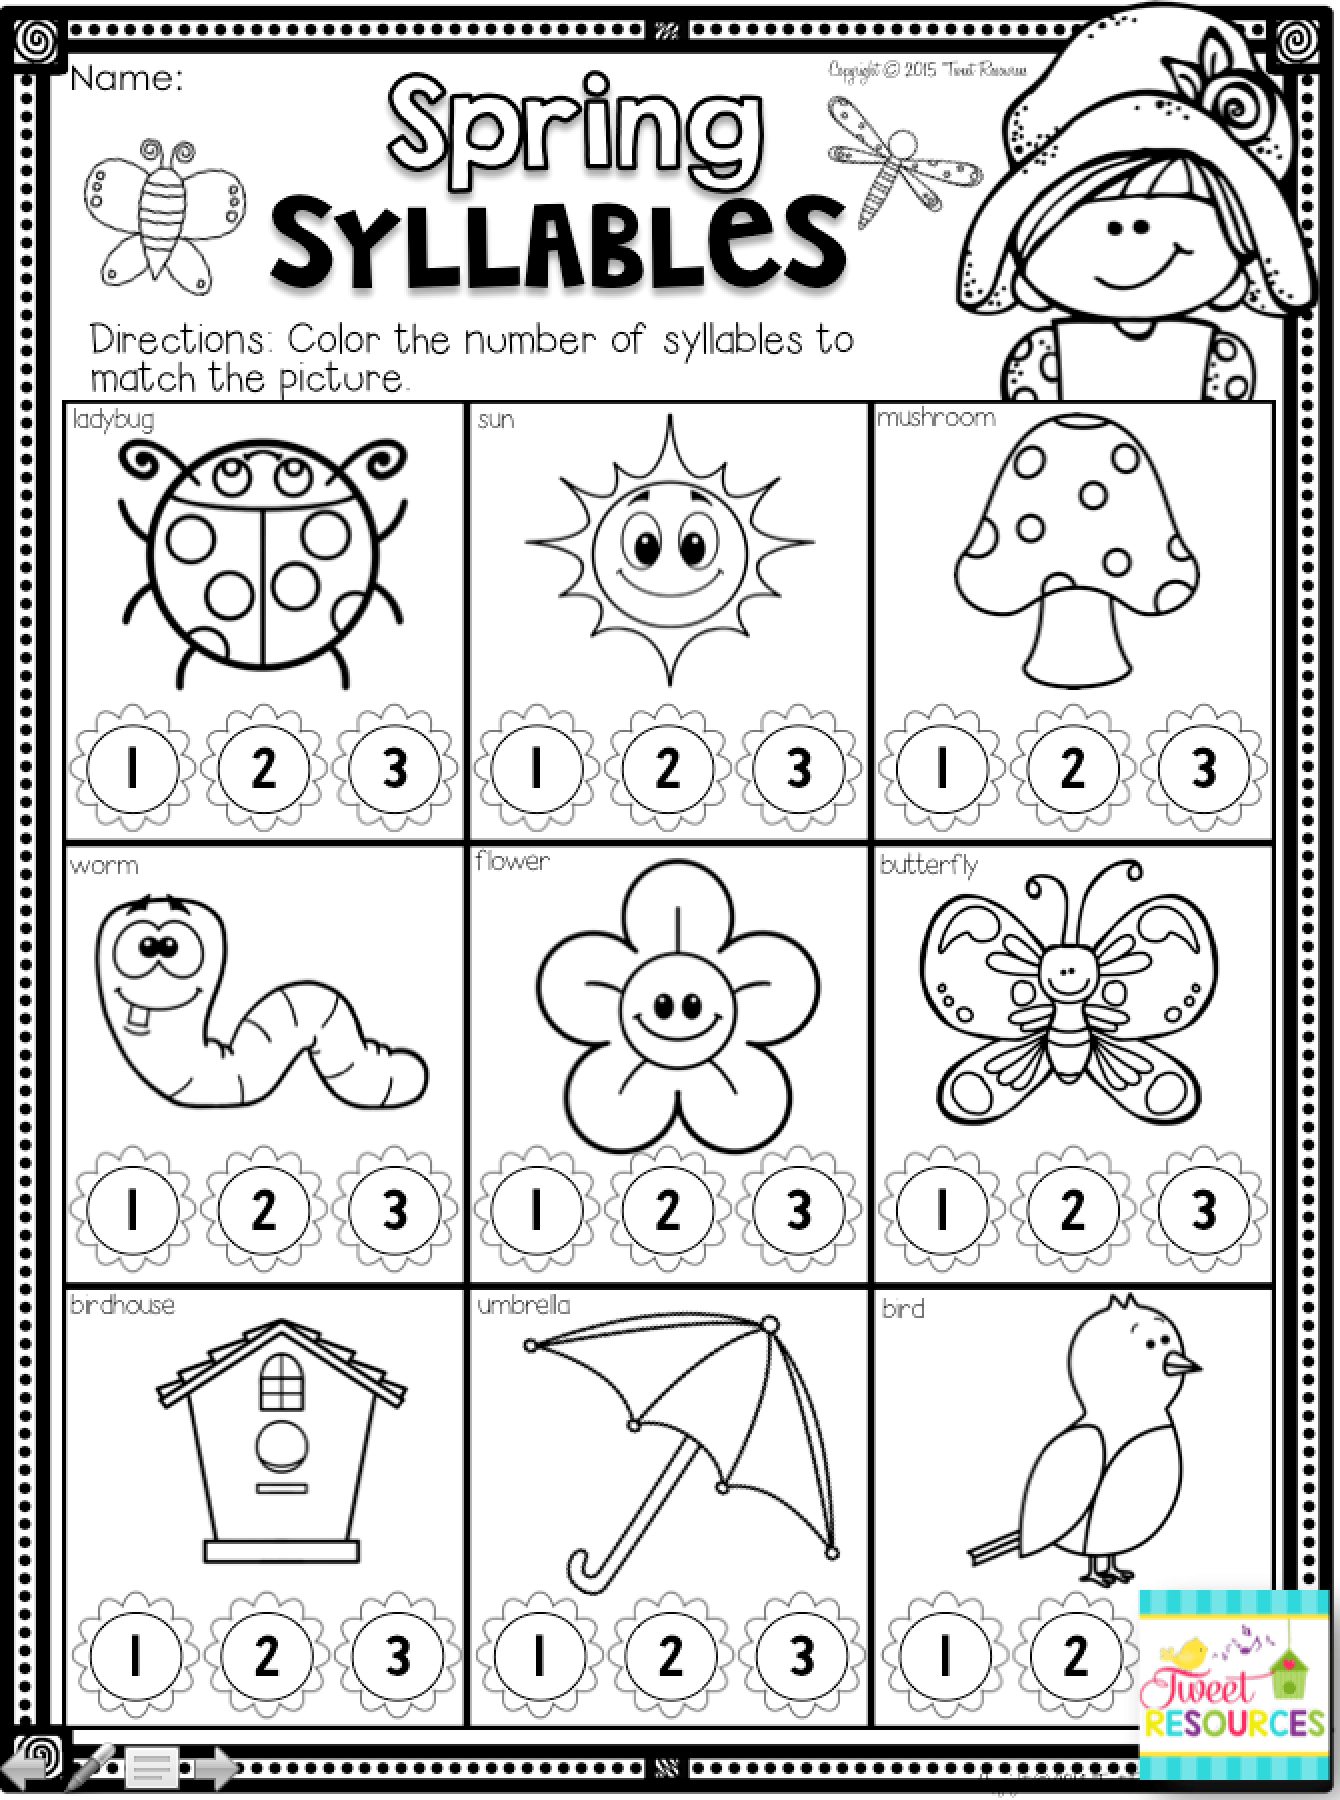 Spring Activities Math And Literacy Printables For